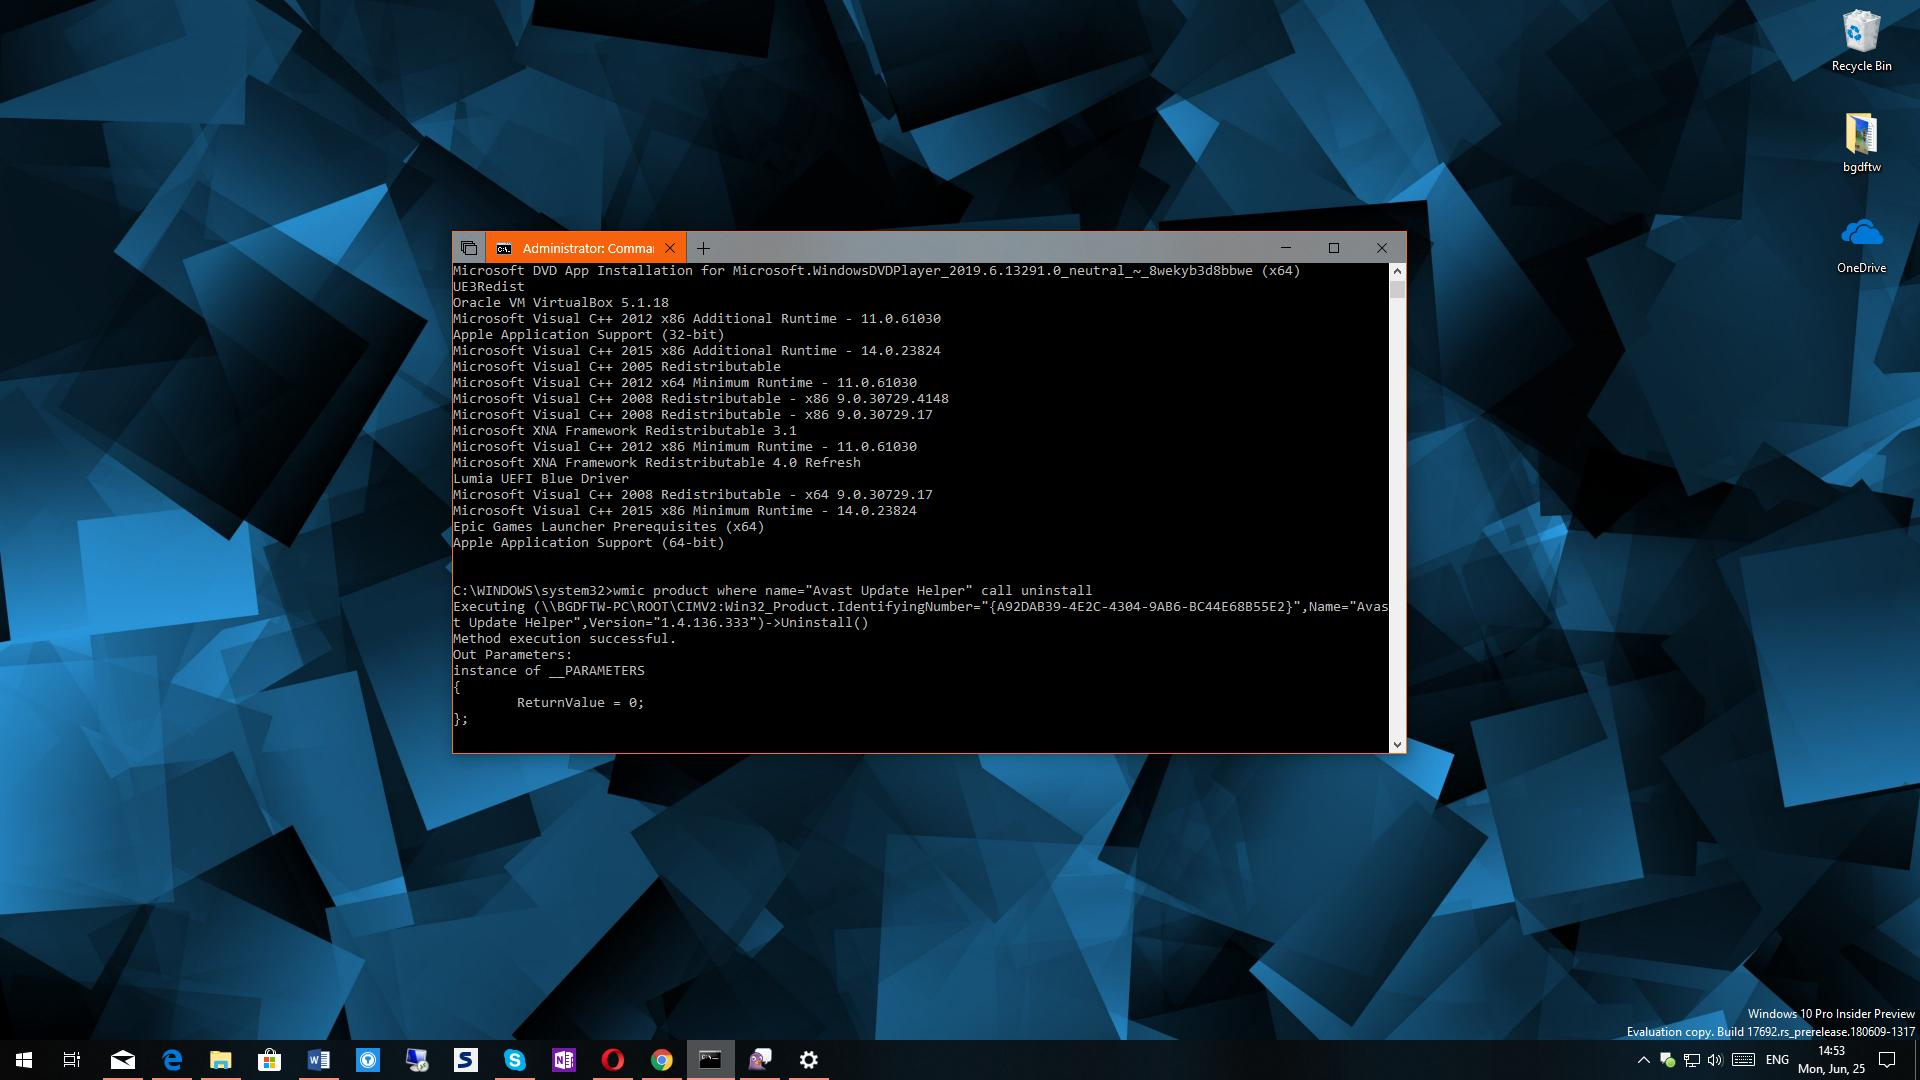 How to Uninstall Windows 10 Apps Using the Command Prompt